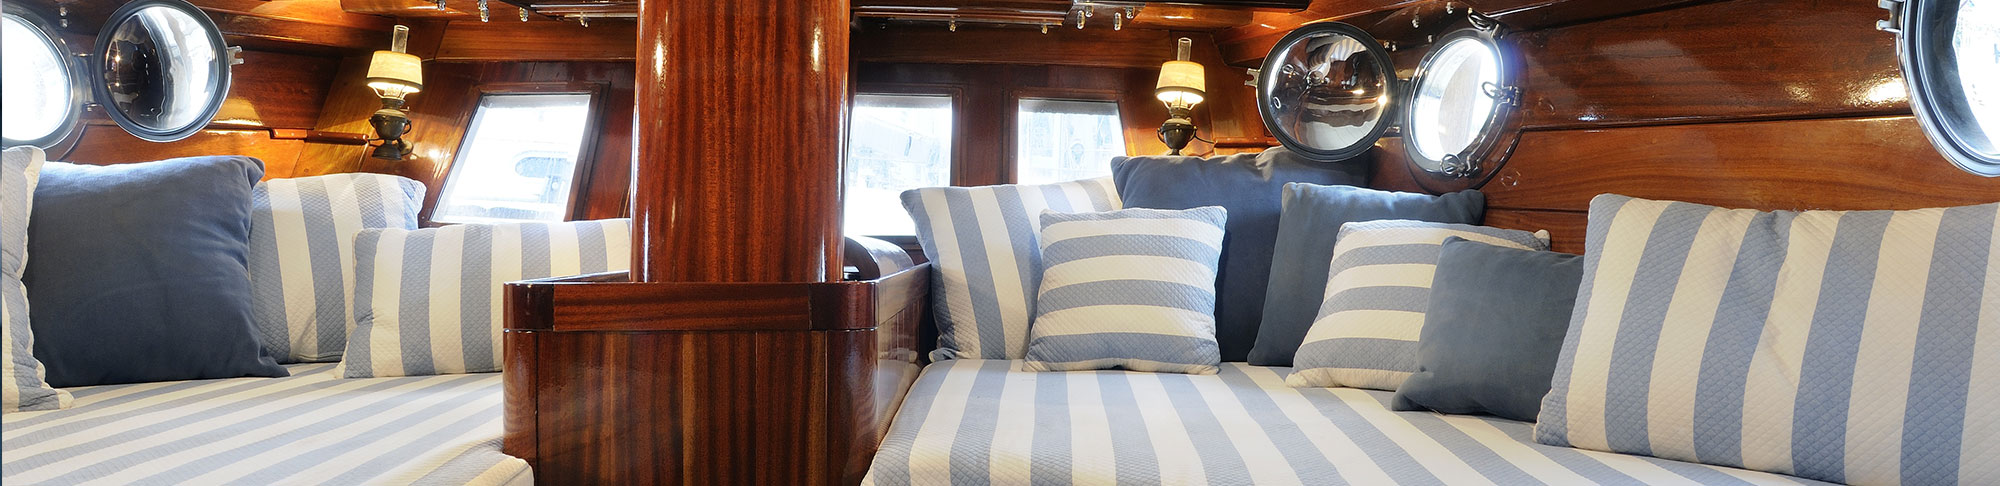 striped blue and white cushions and seating in boat cabin